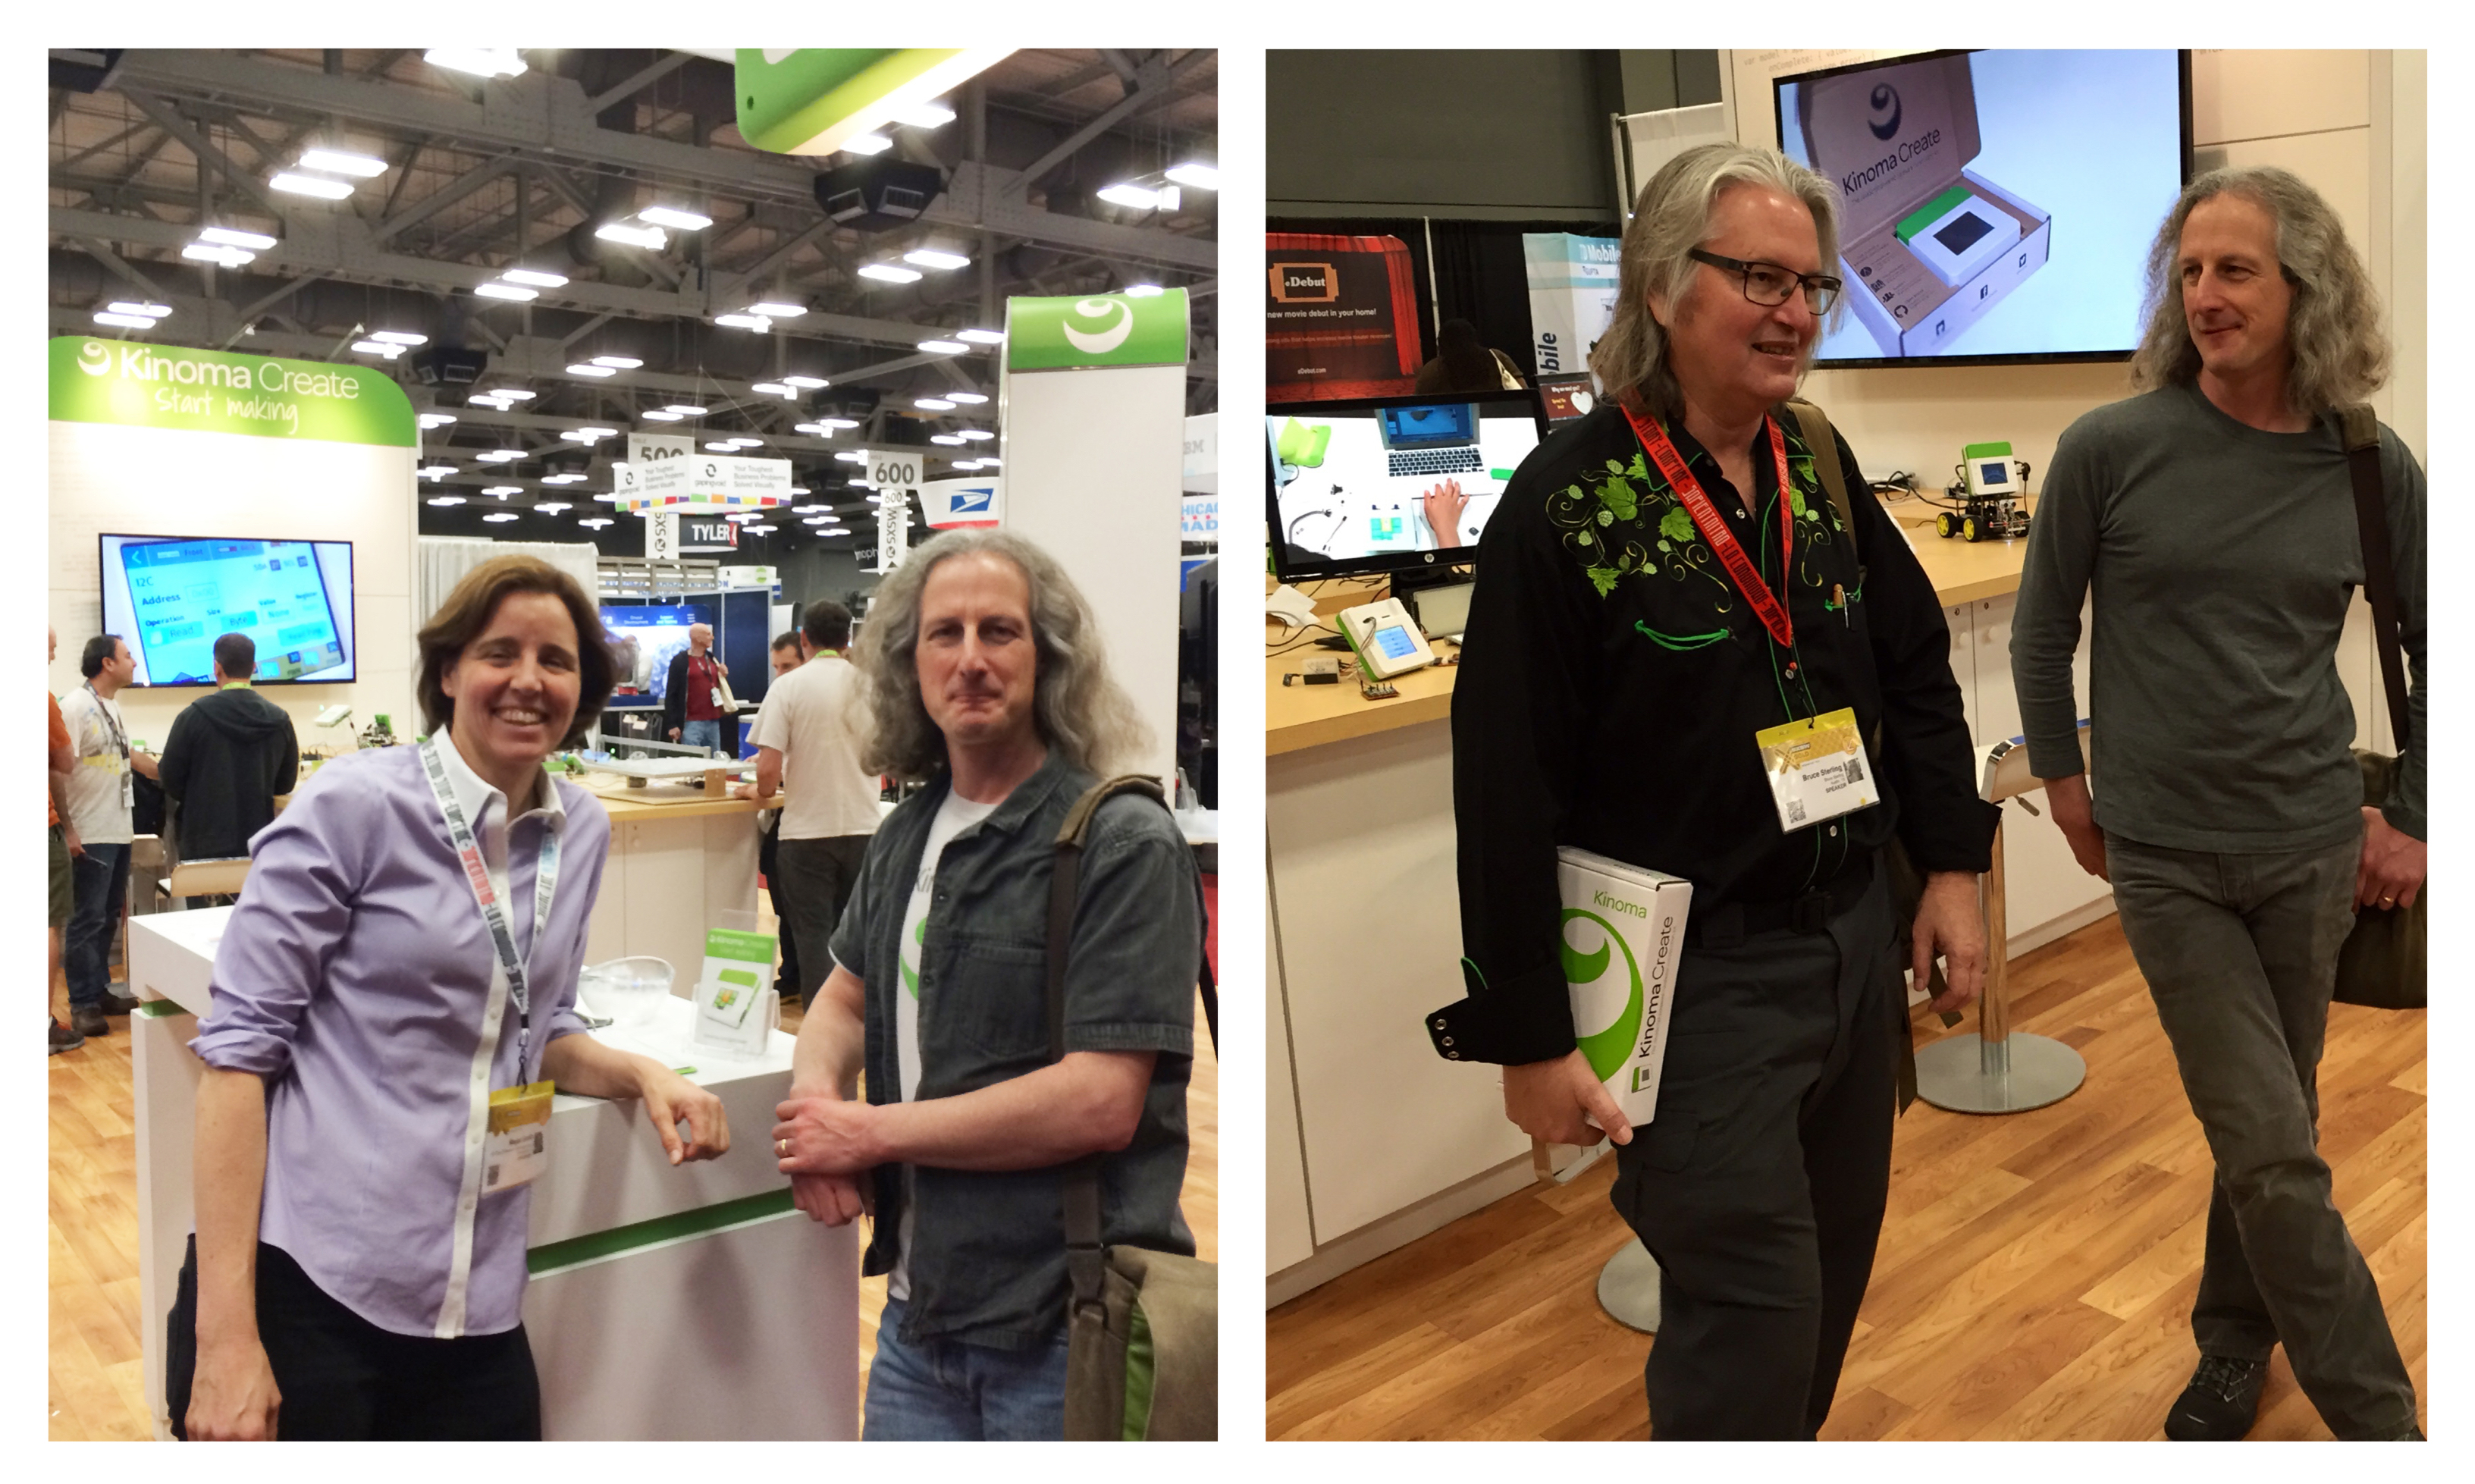 Megan Smith and Bruce Sterling PicFrame